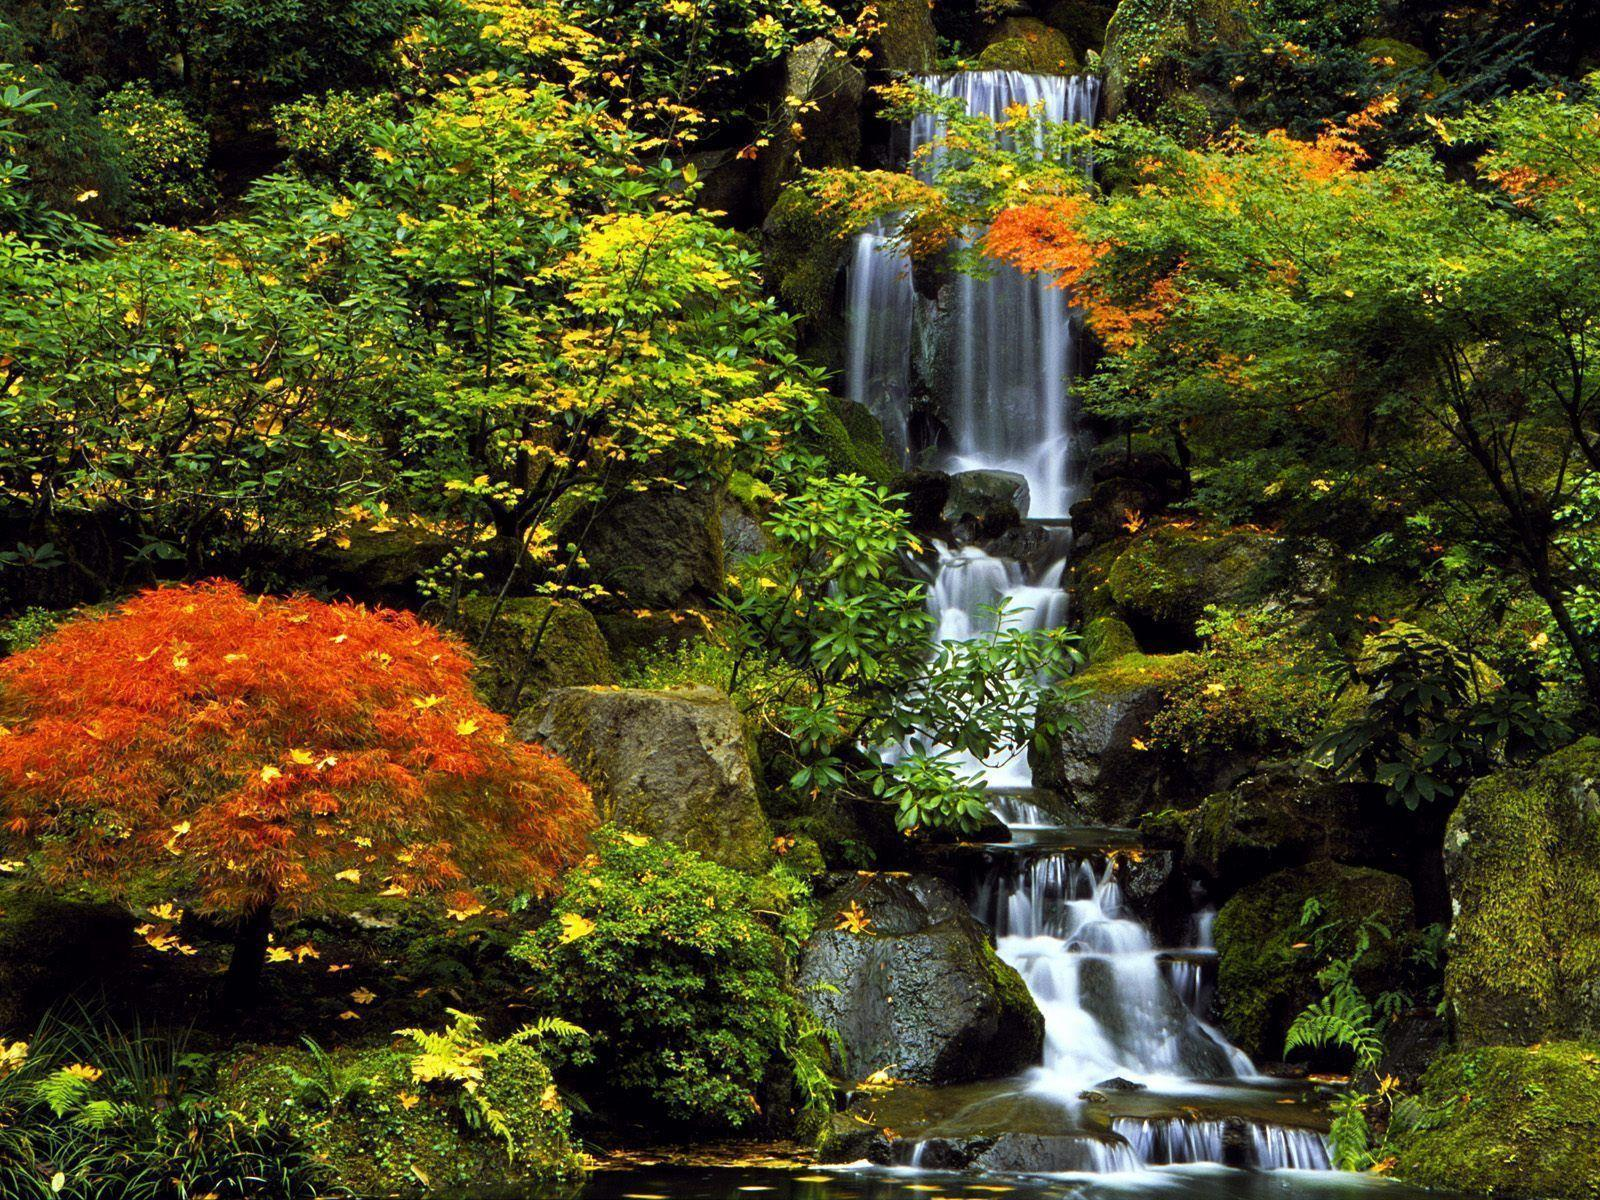 peartreedesigns: Japan Nature and landscape